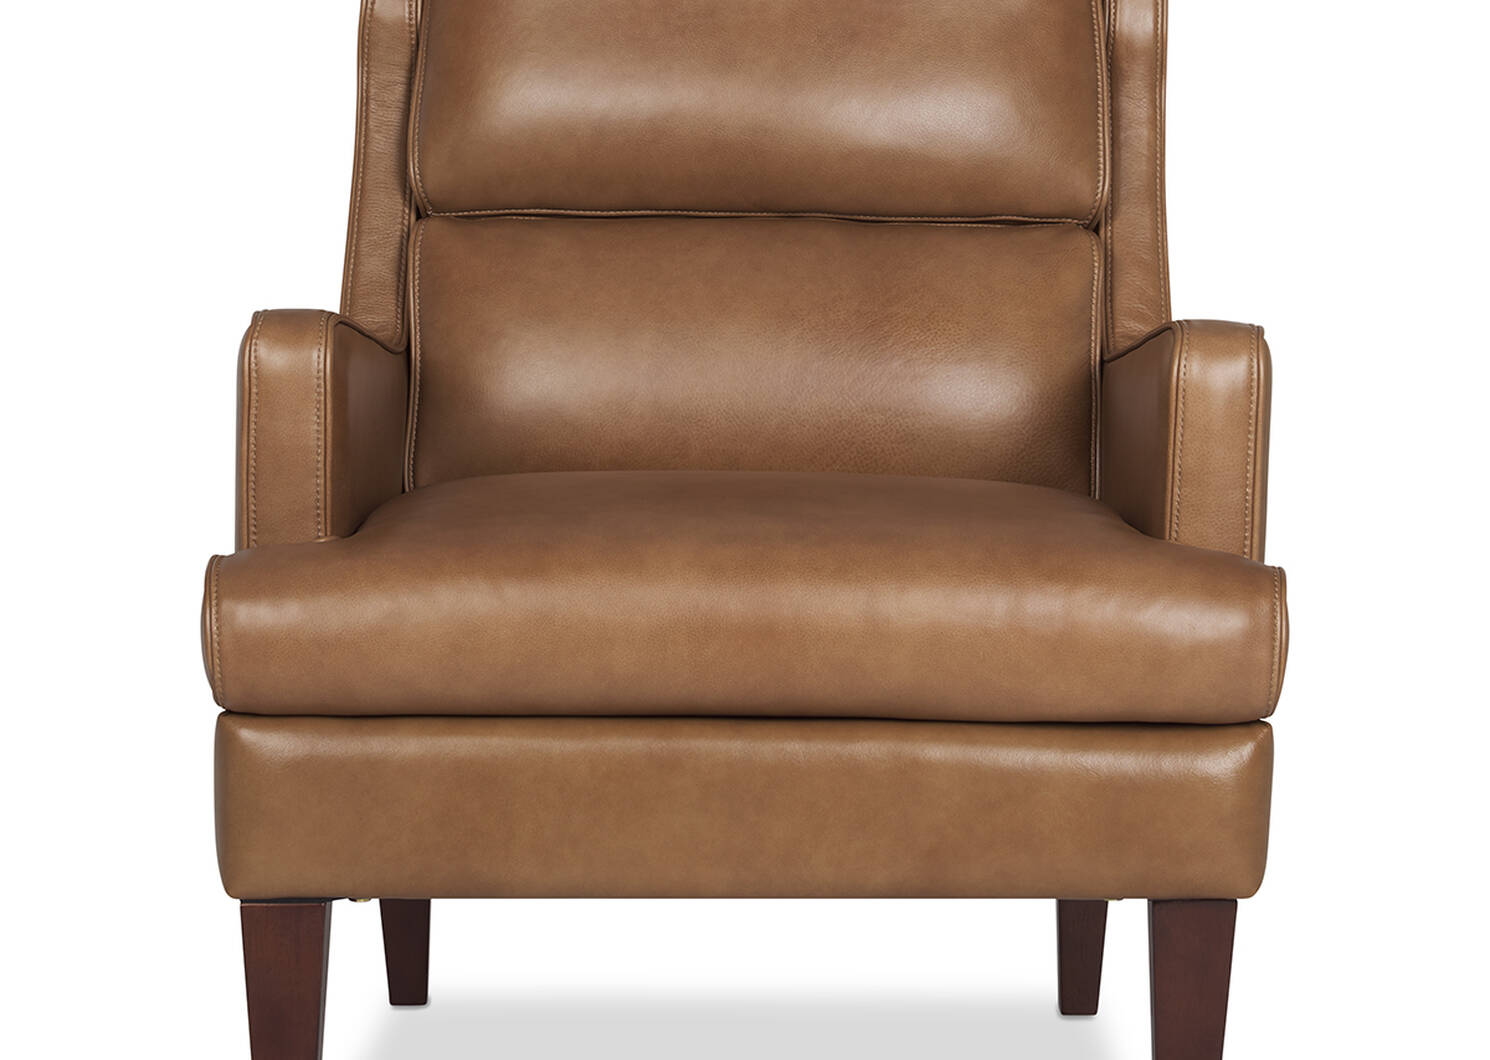 Idris Leather Armchair -Mira Rum